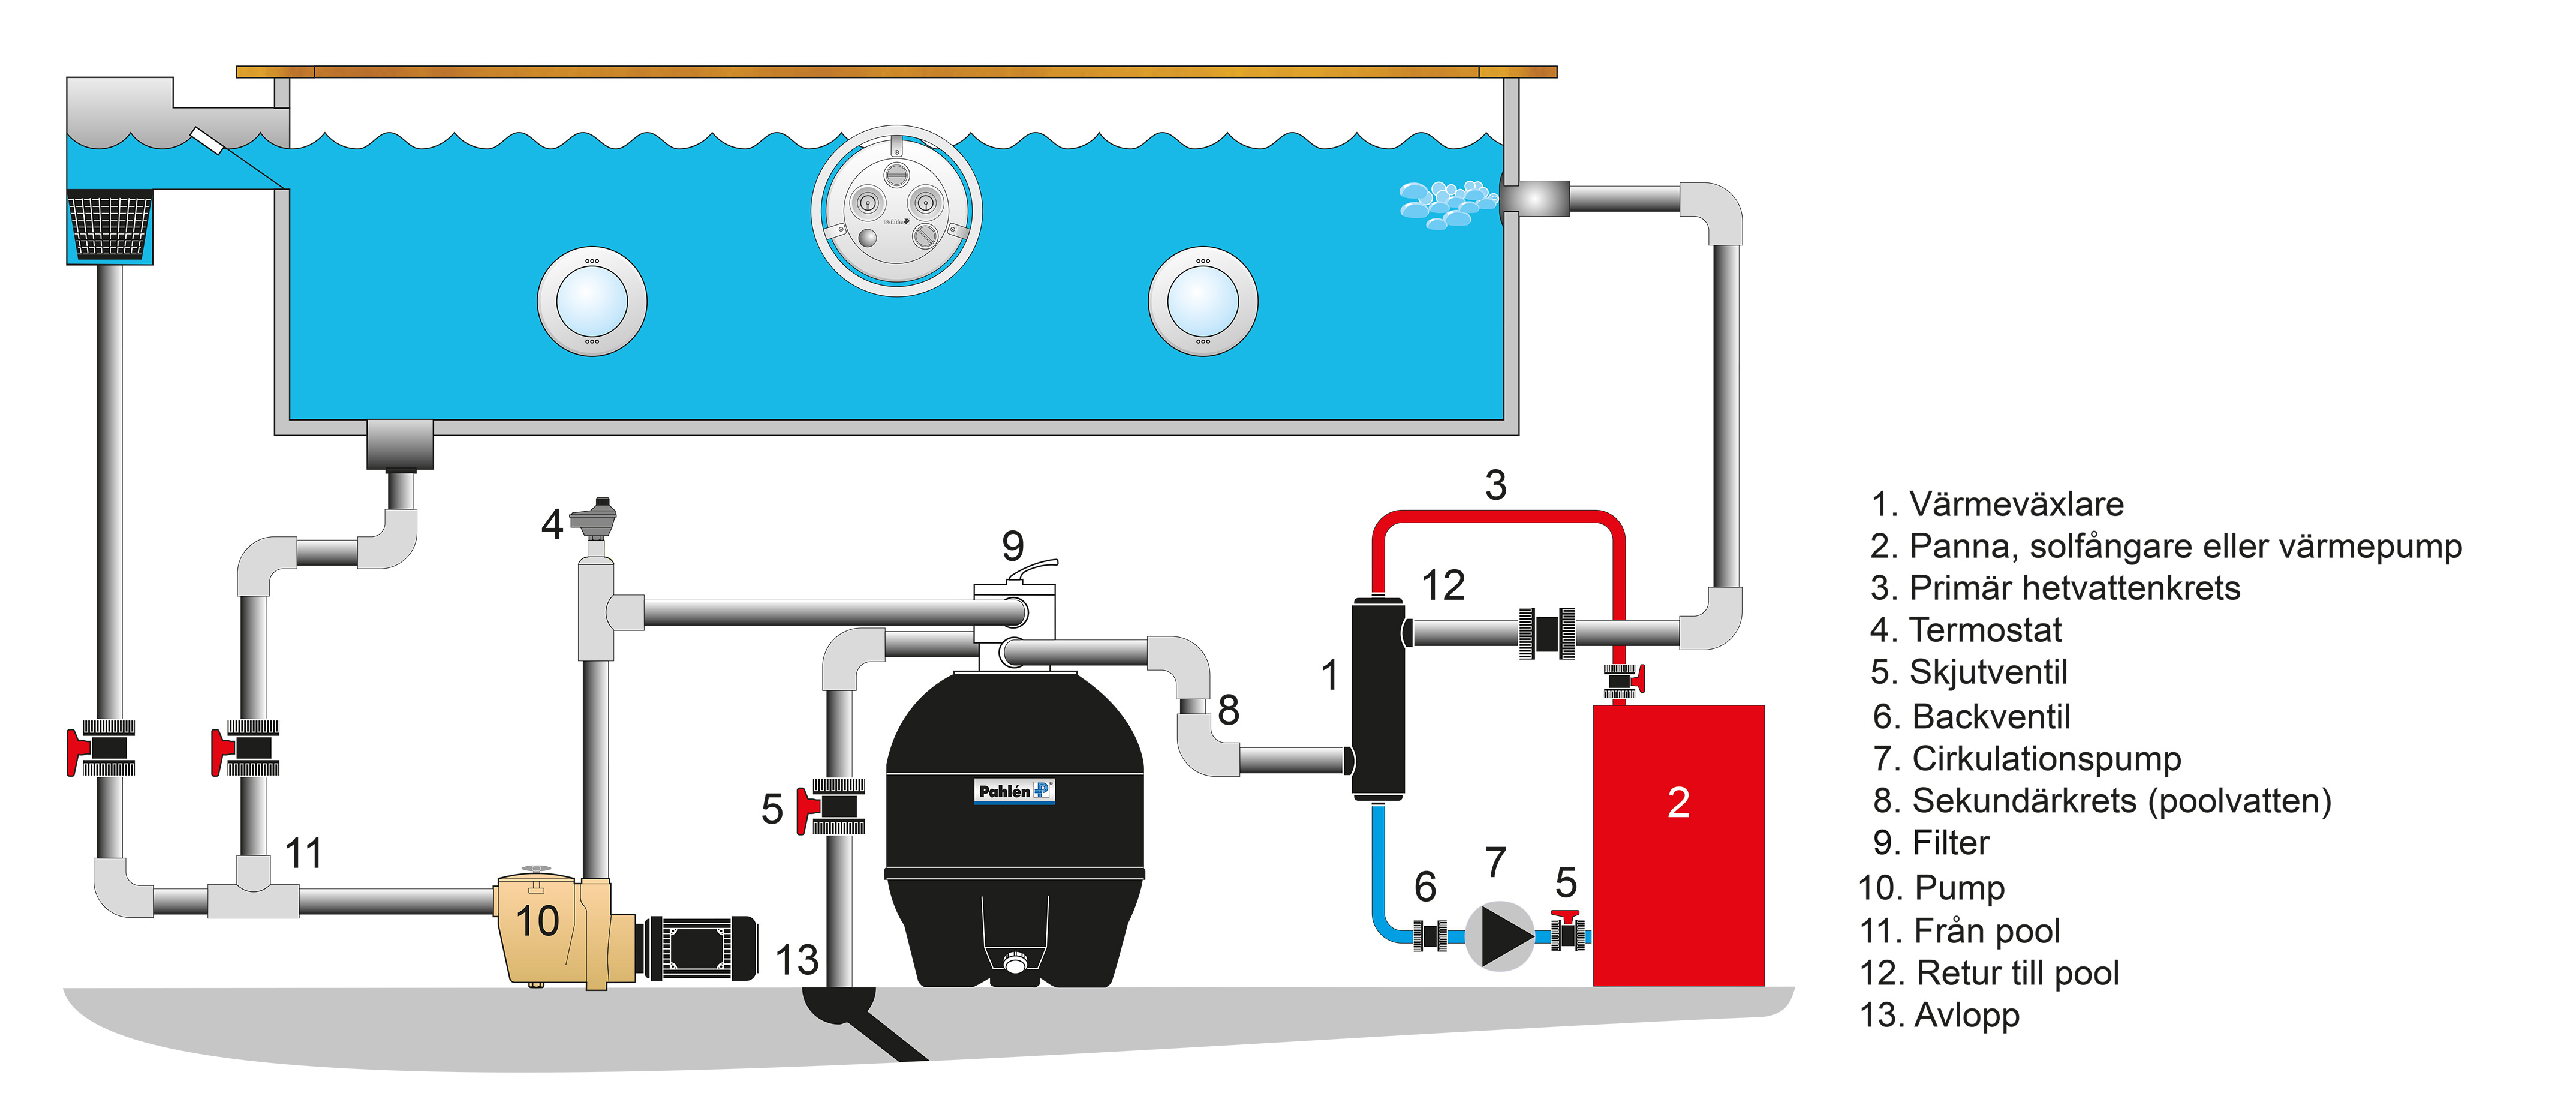 Swimming pool schematic heat exchanger, electric heater,heat pump